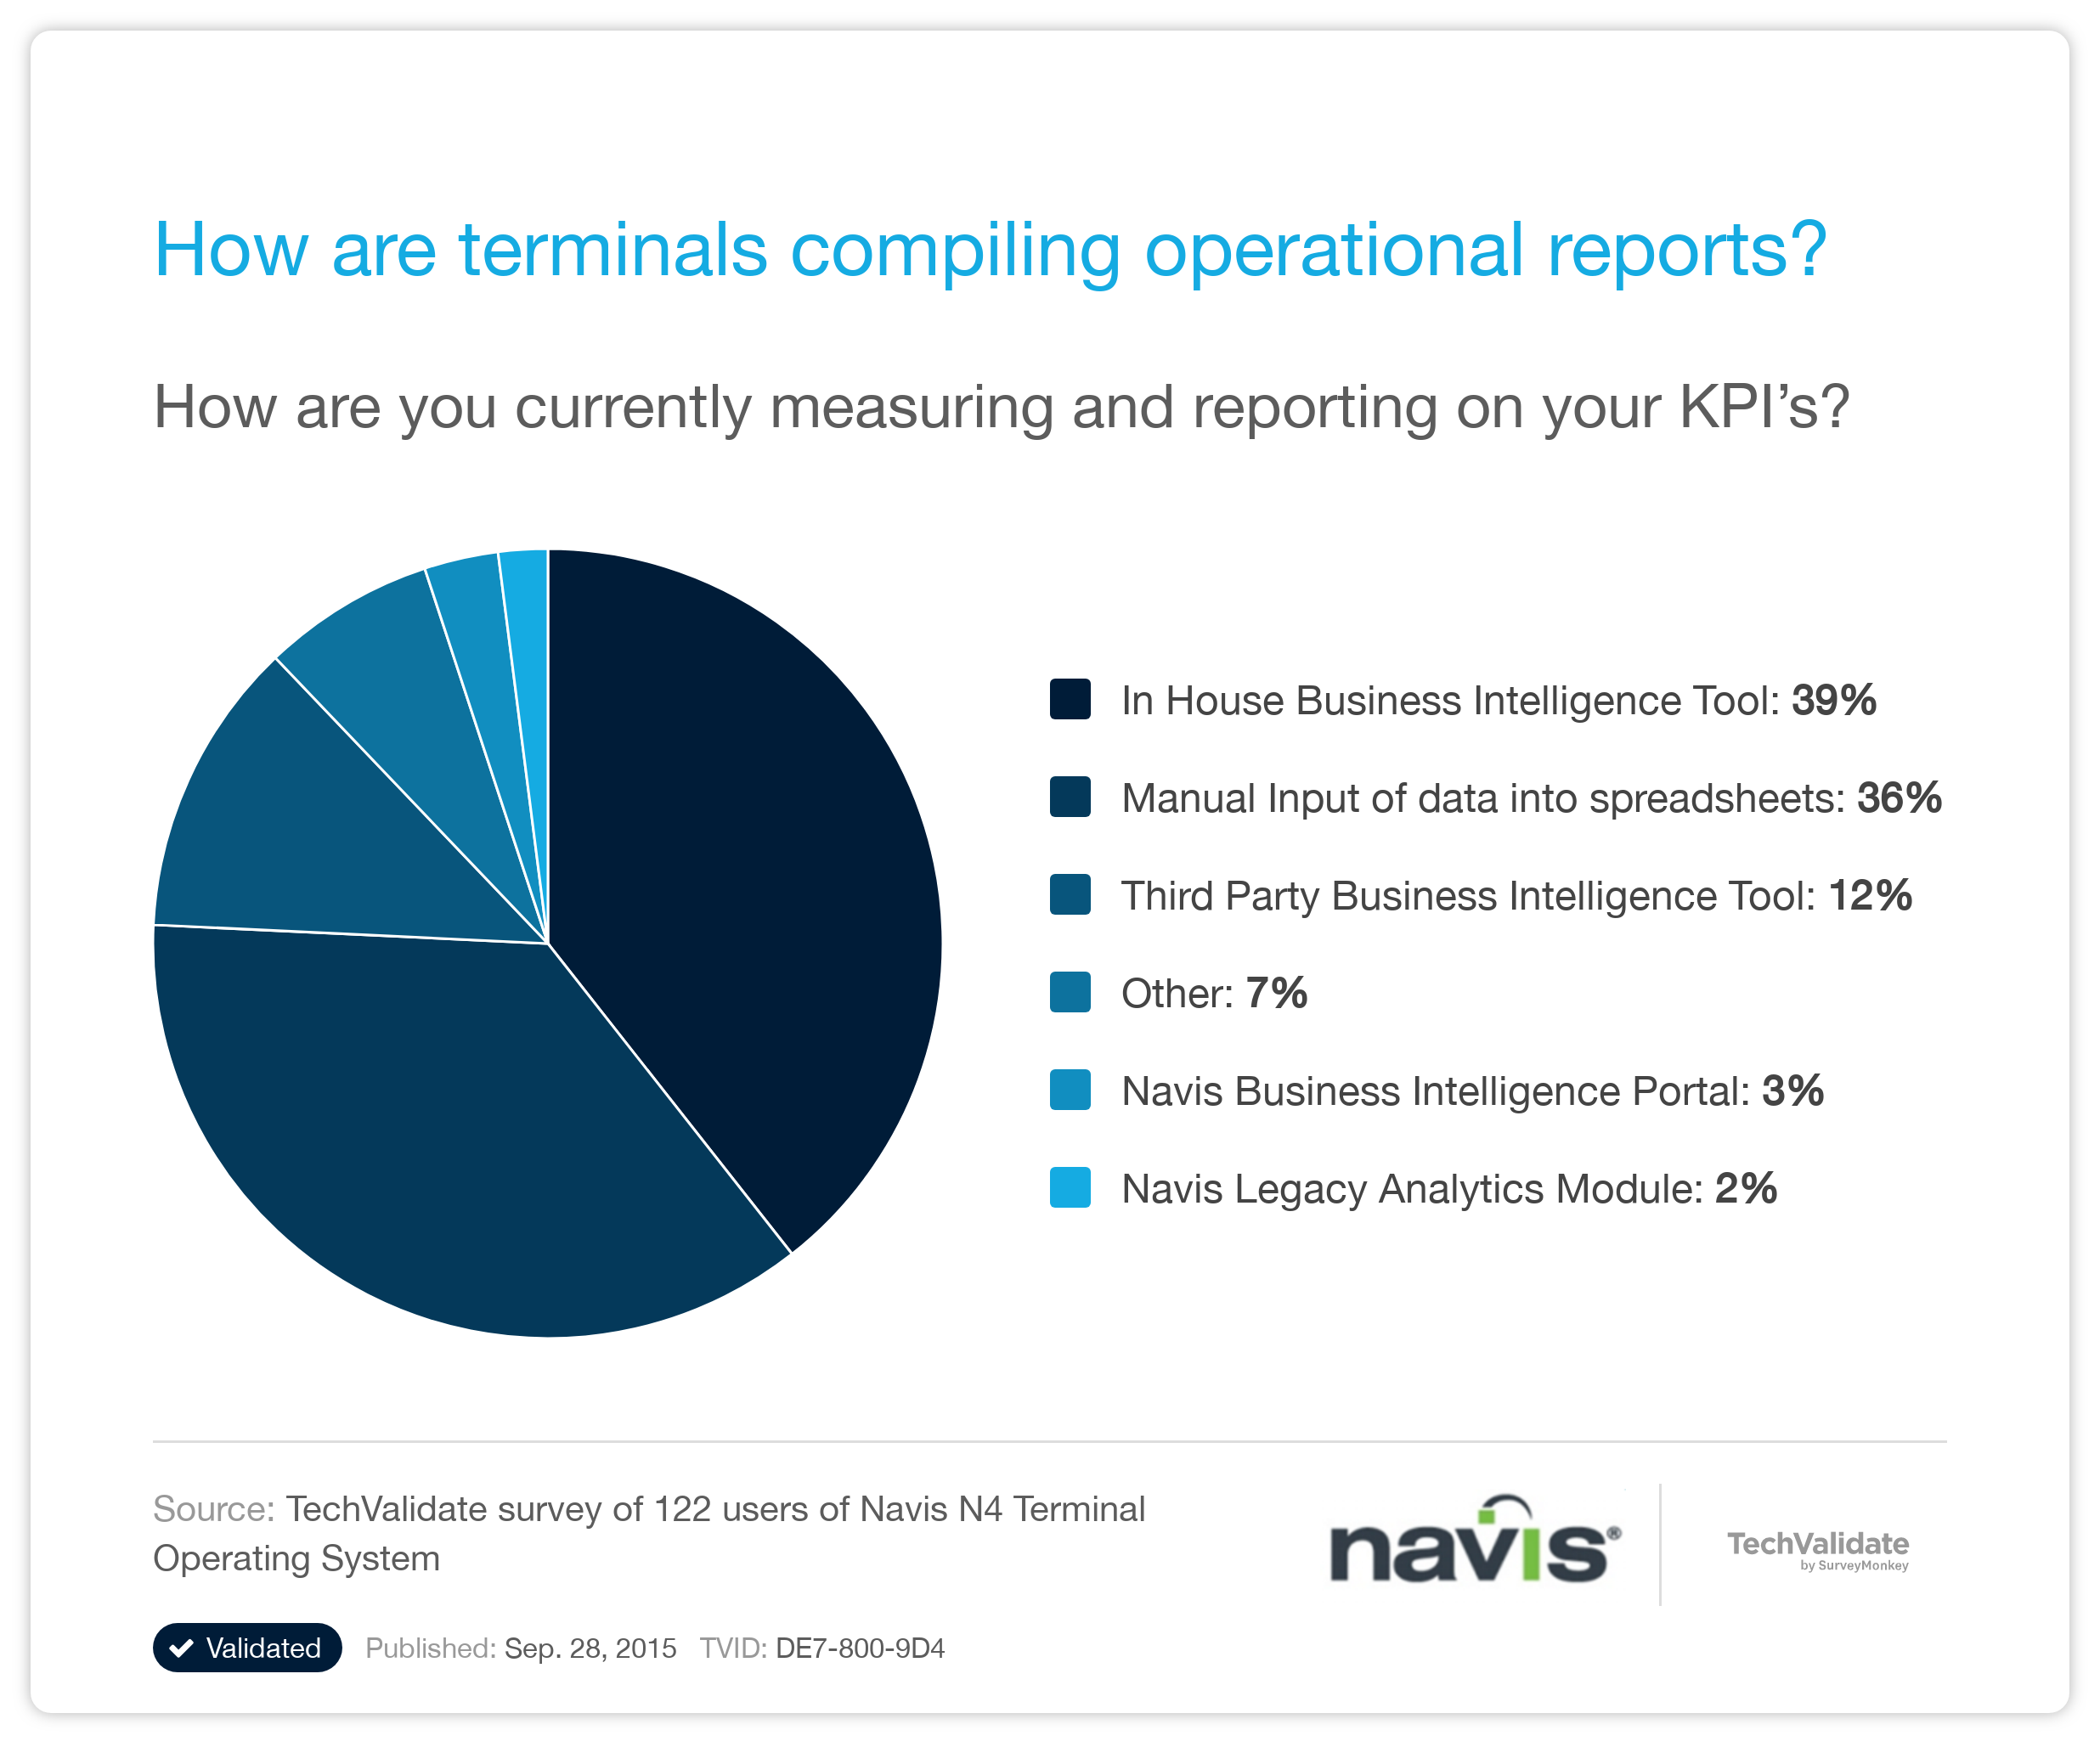 navis n4 tos research chart how are terminals compiling operational reports  techvalidate  navis n4 user manual